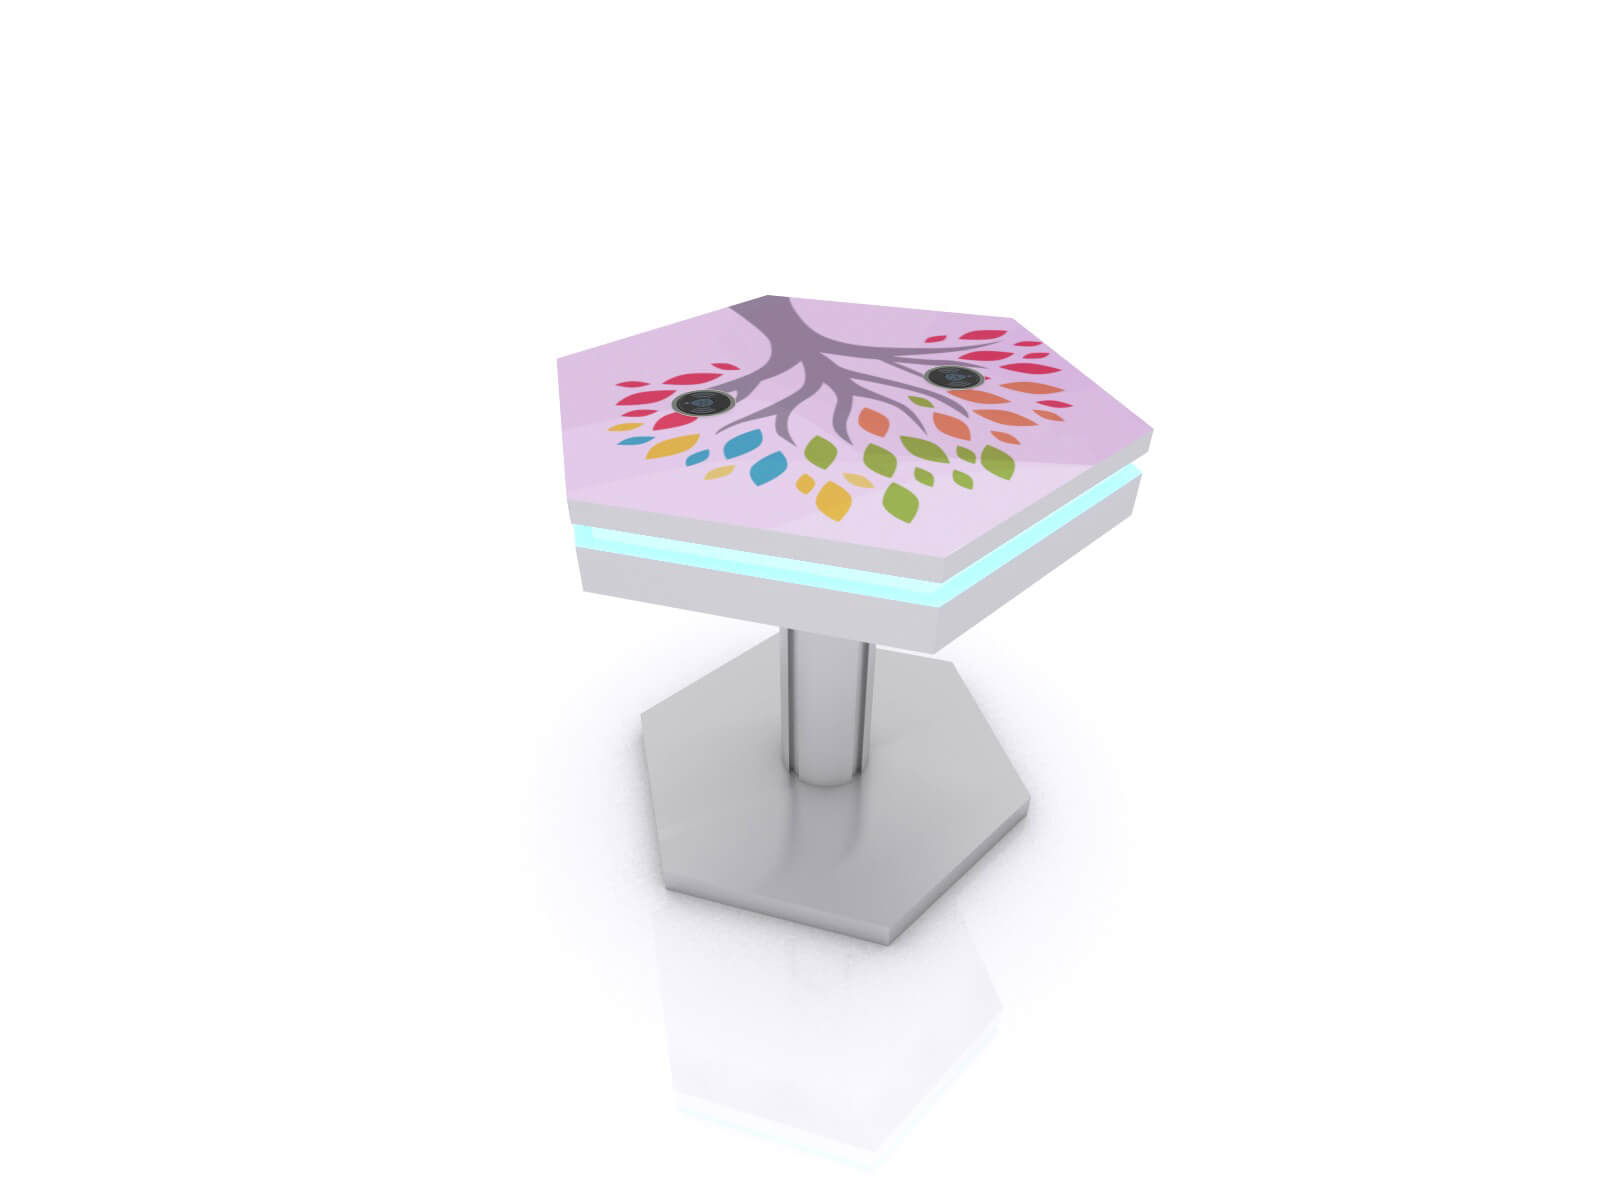 MOD-1466 Trade Show and Event Wireless End Table Charging Station - image 1